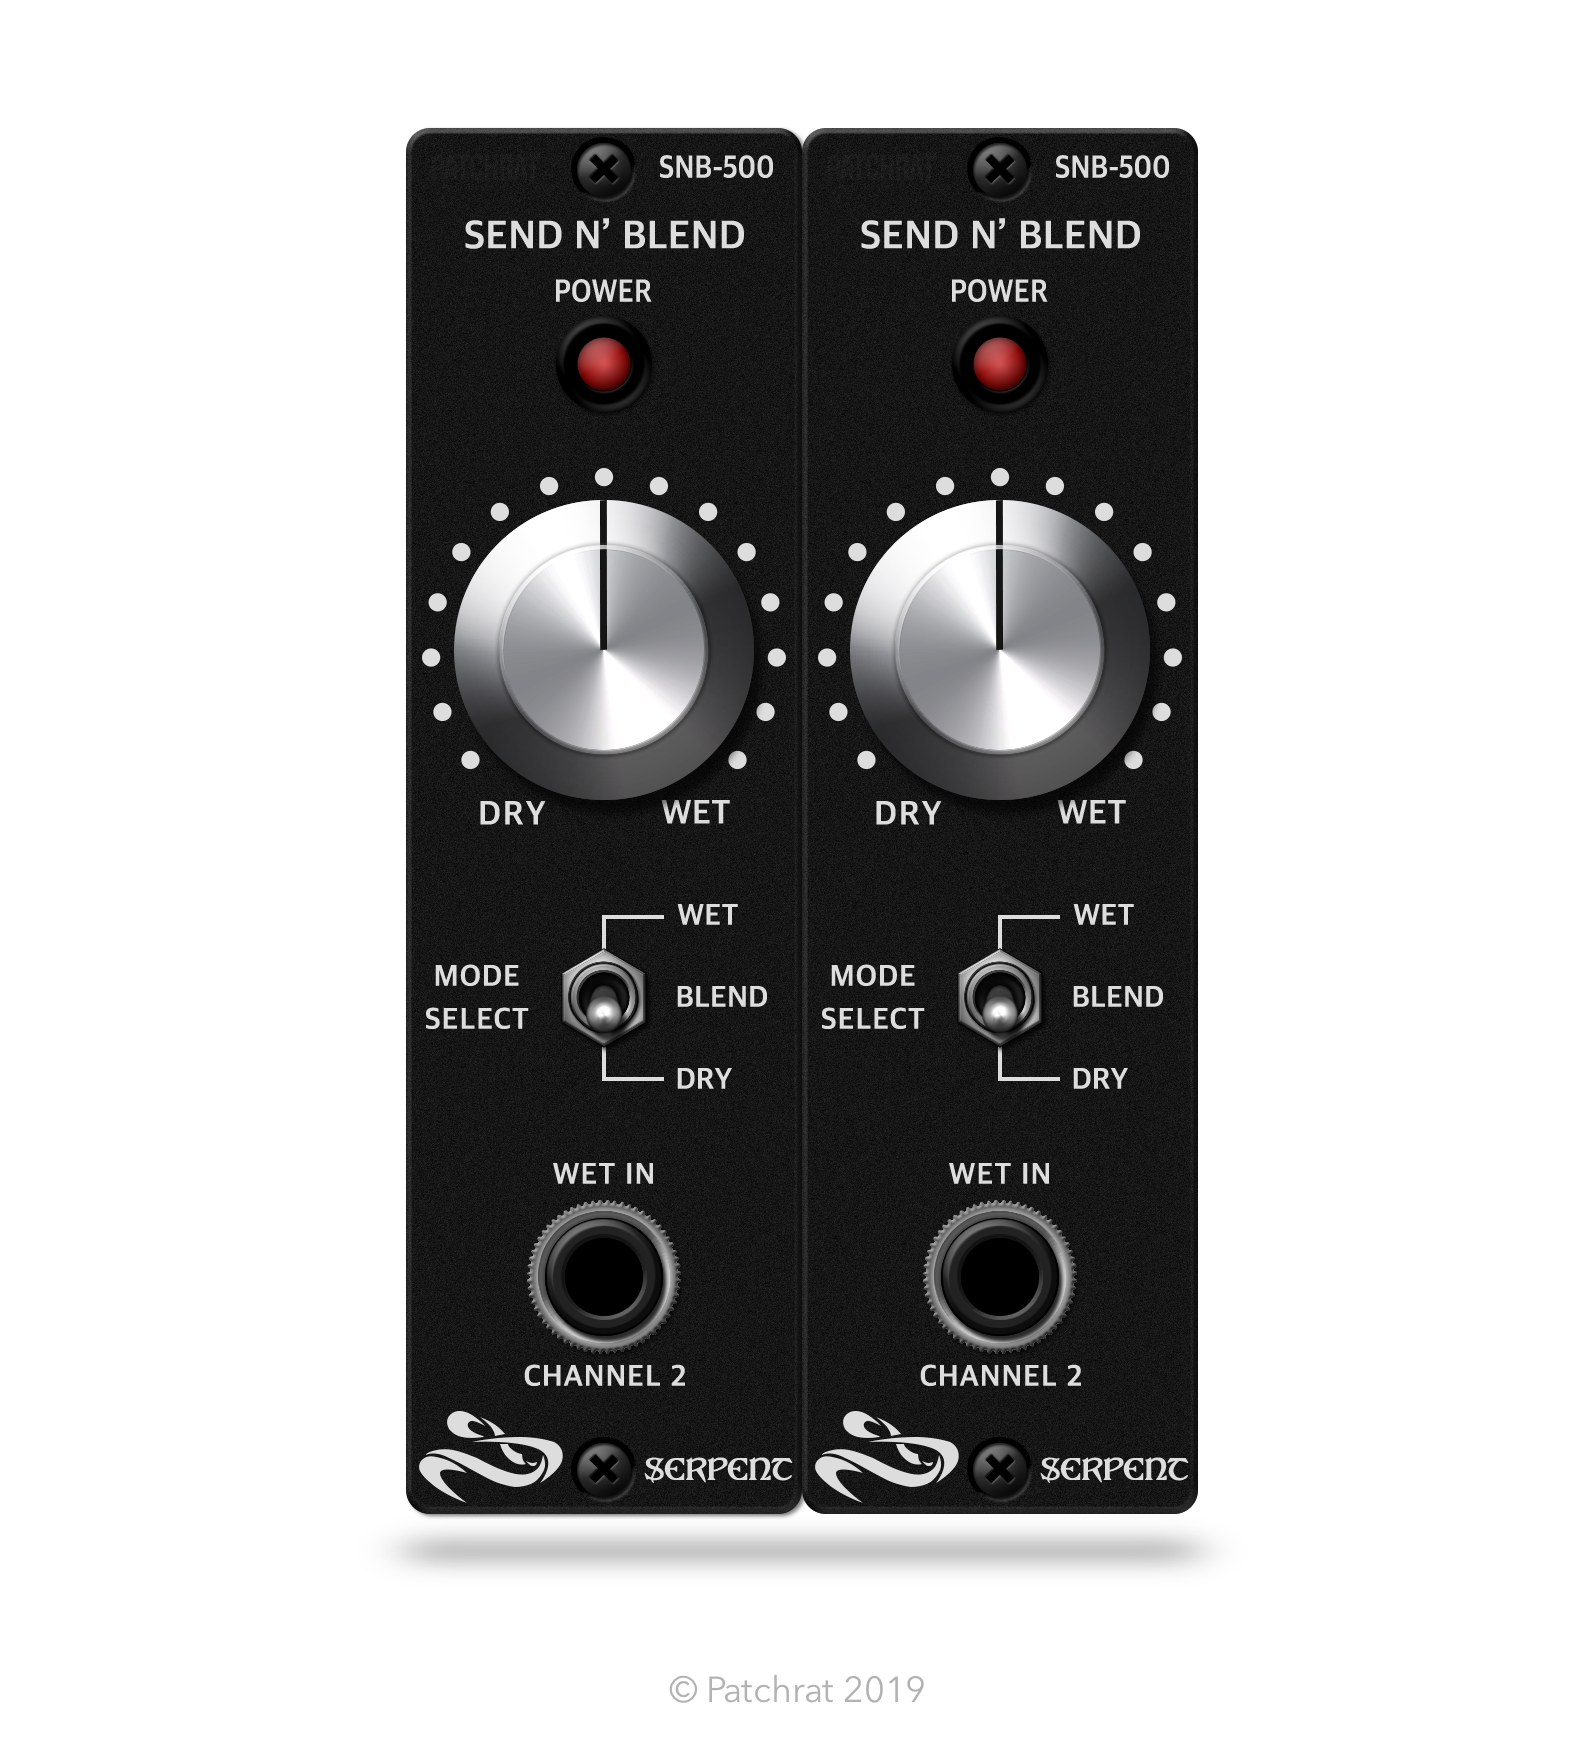 Serpent Audio SNB-500 Send n' Blend (Pair) recall module for the Patchrat app